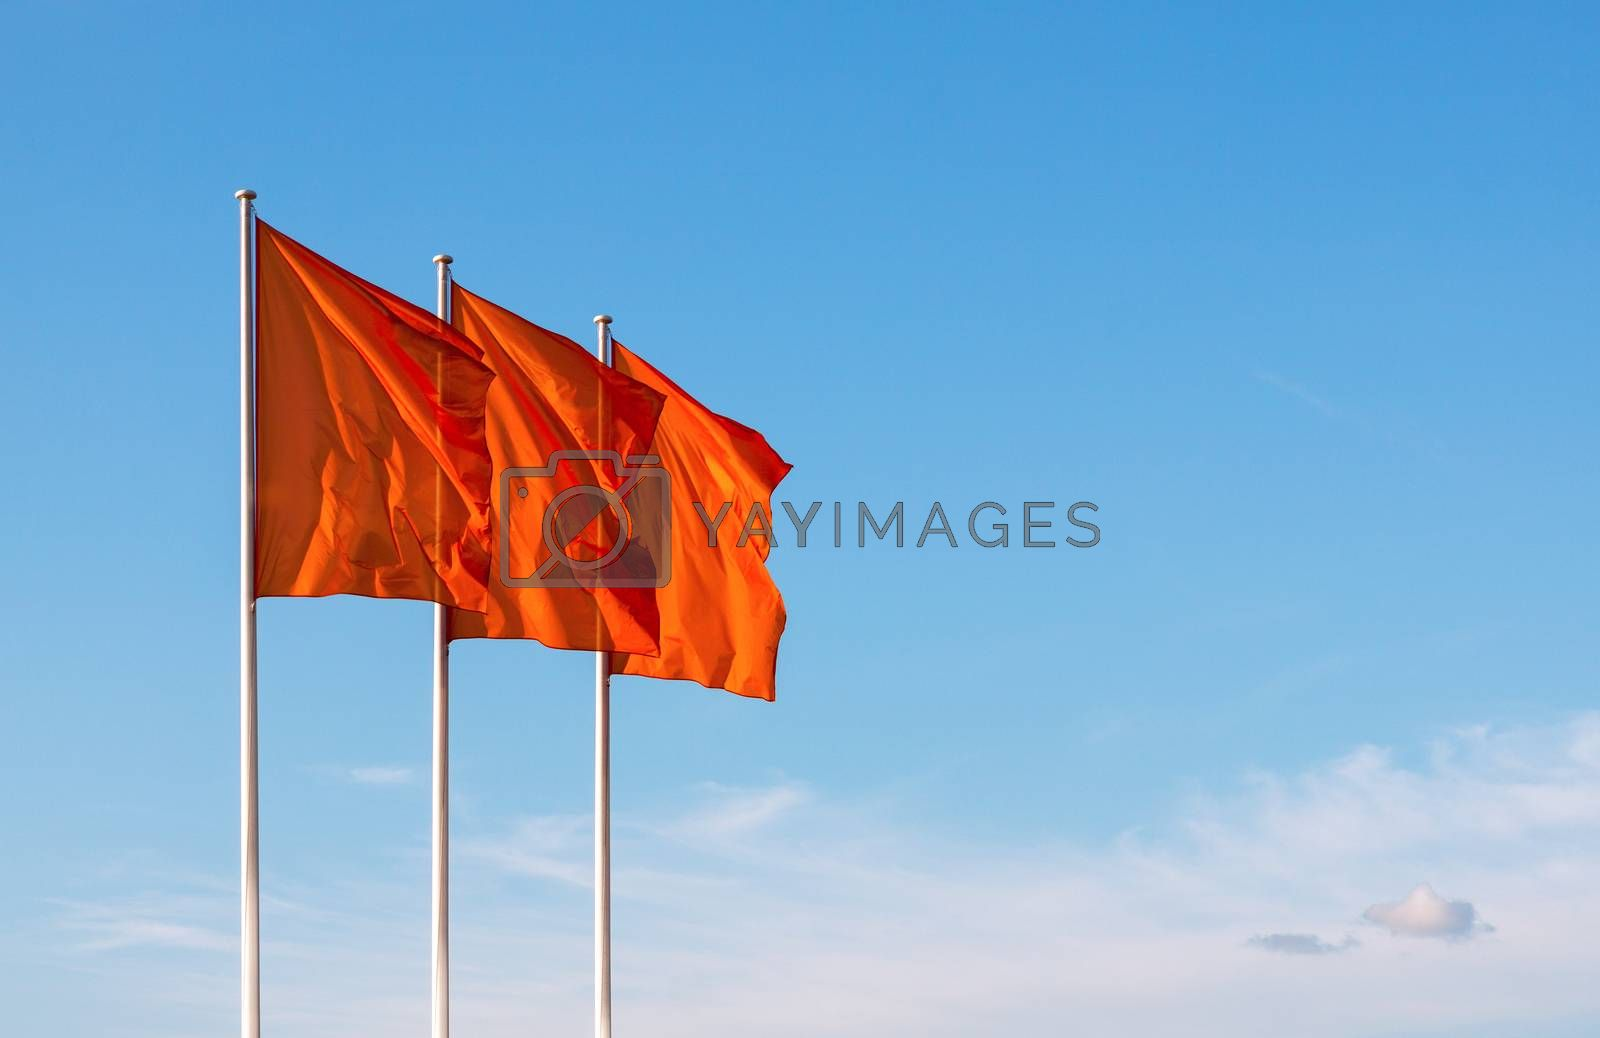 Three red blank flags waving in the wind against cloudy sky. Perfect mockup to add any logo, symbol or sign